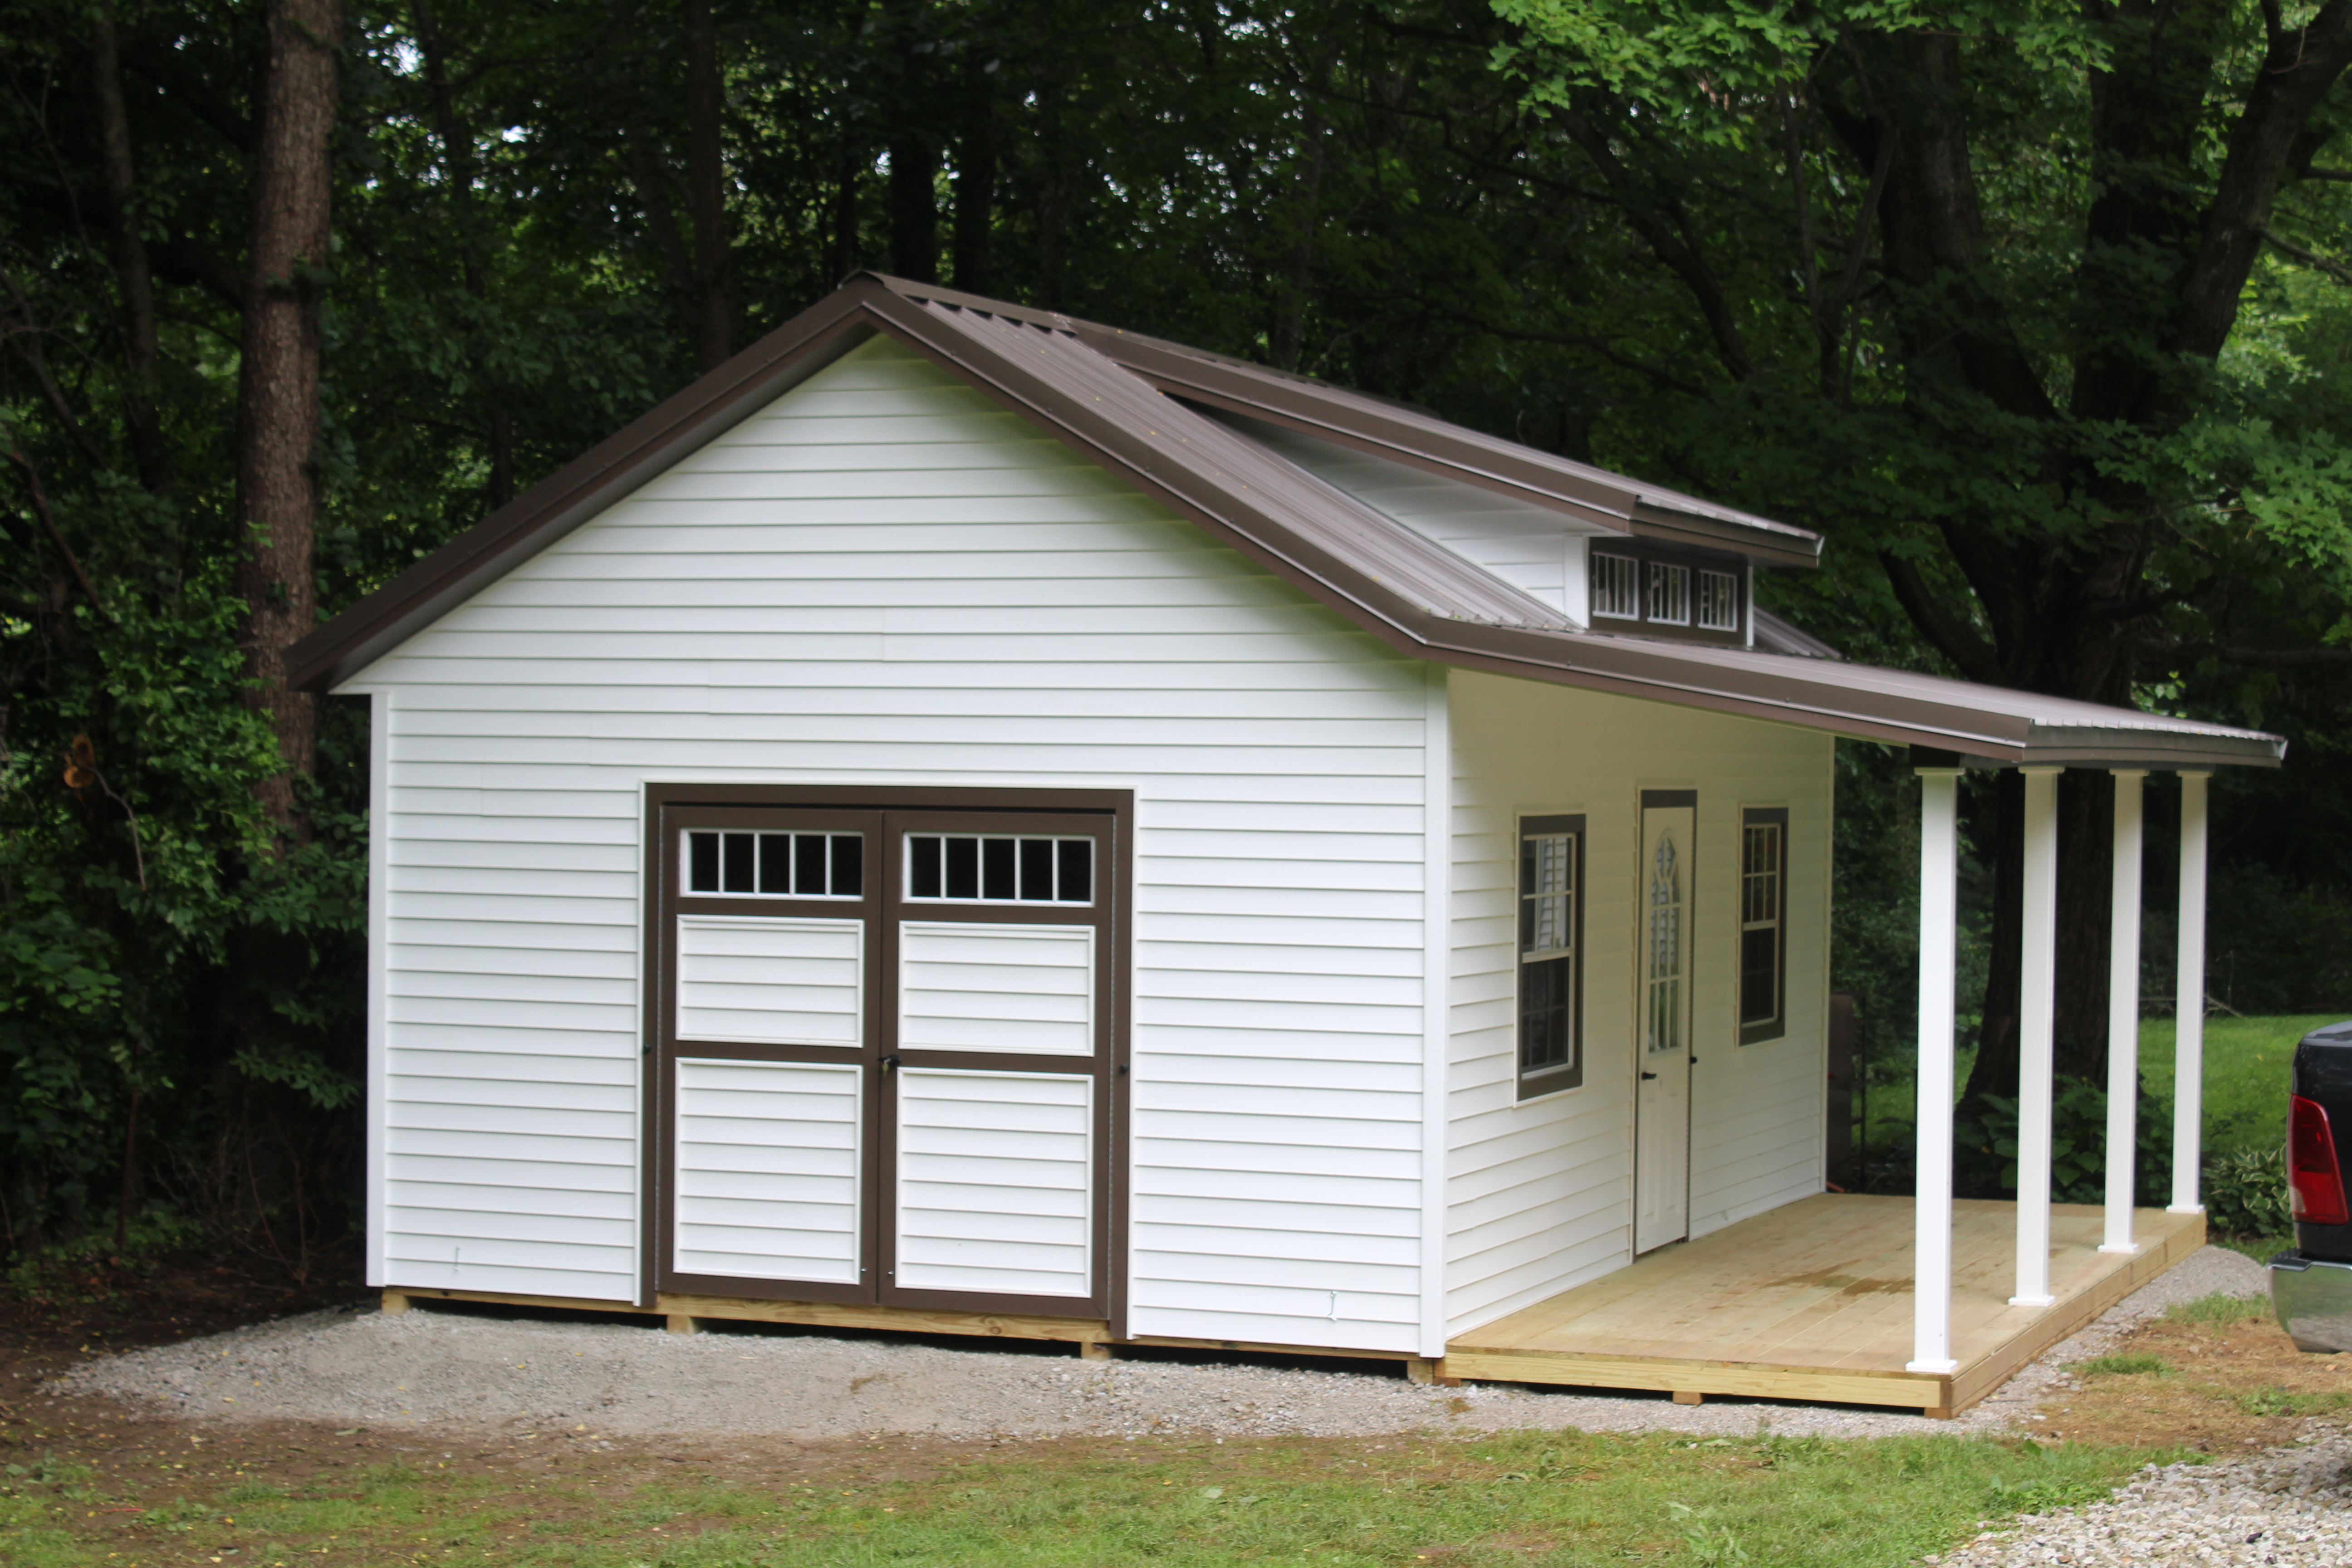 14x20 Garden Shed W Triple Transom Dormer And Porch